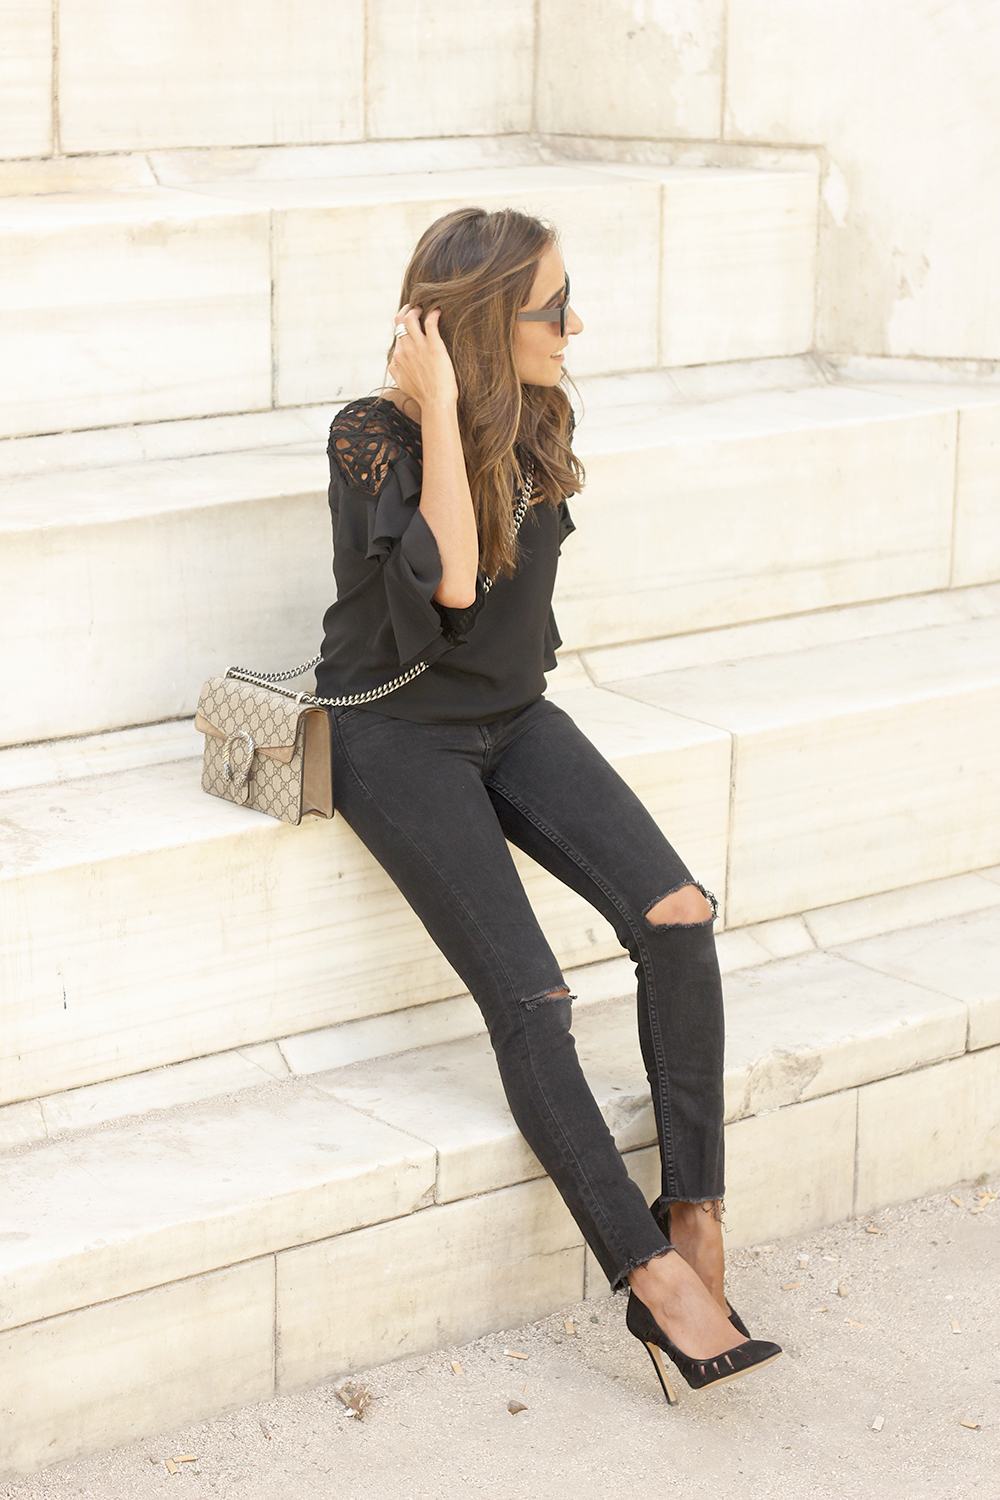 black top black jeans heels gucci bag sunnies outfit fashion style04